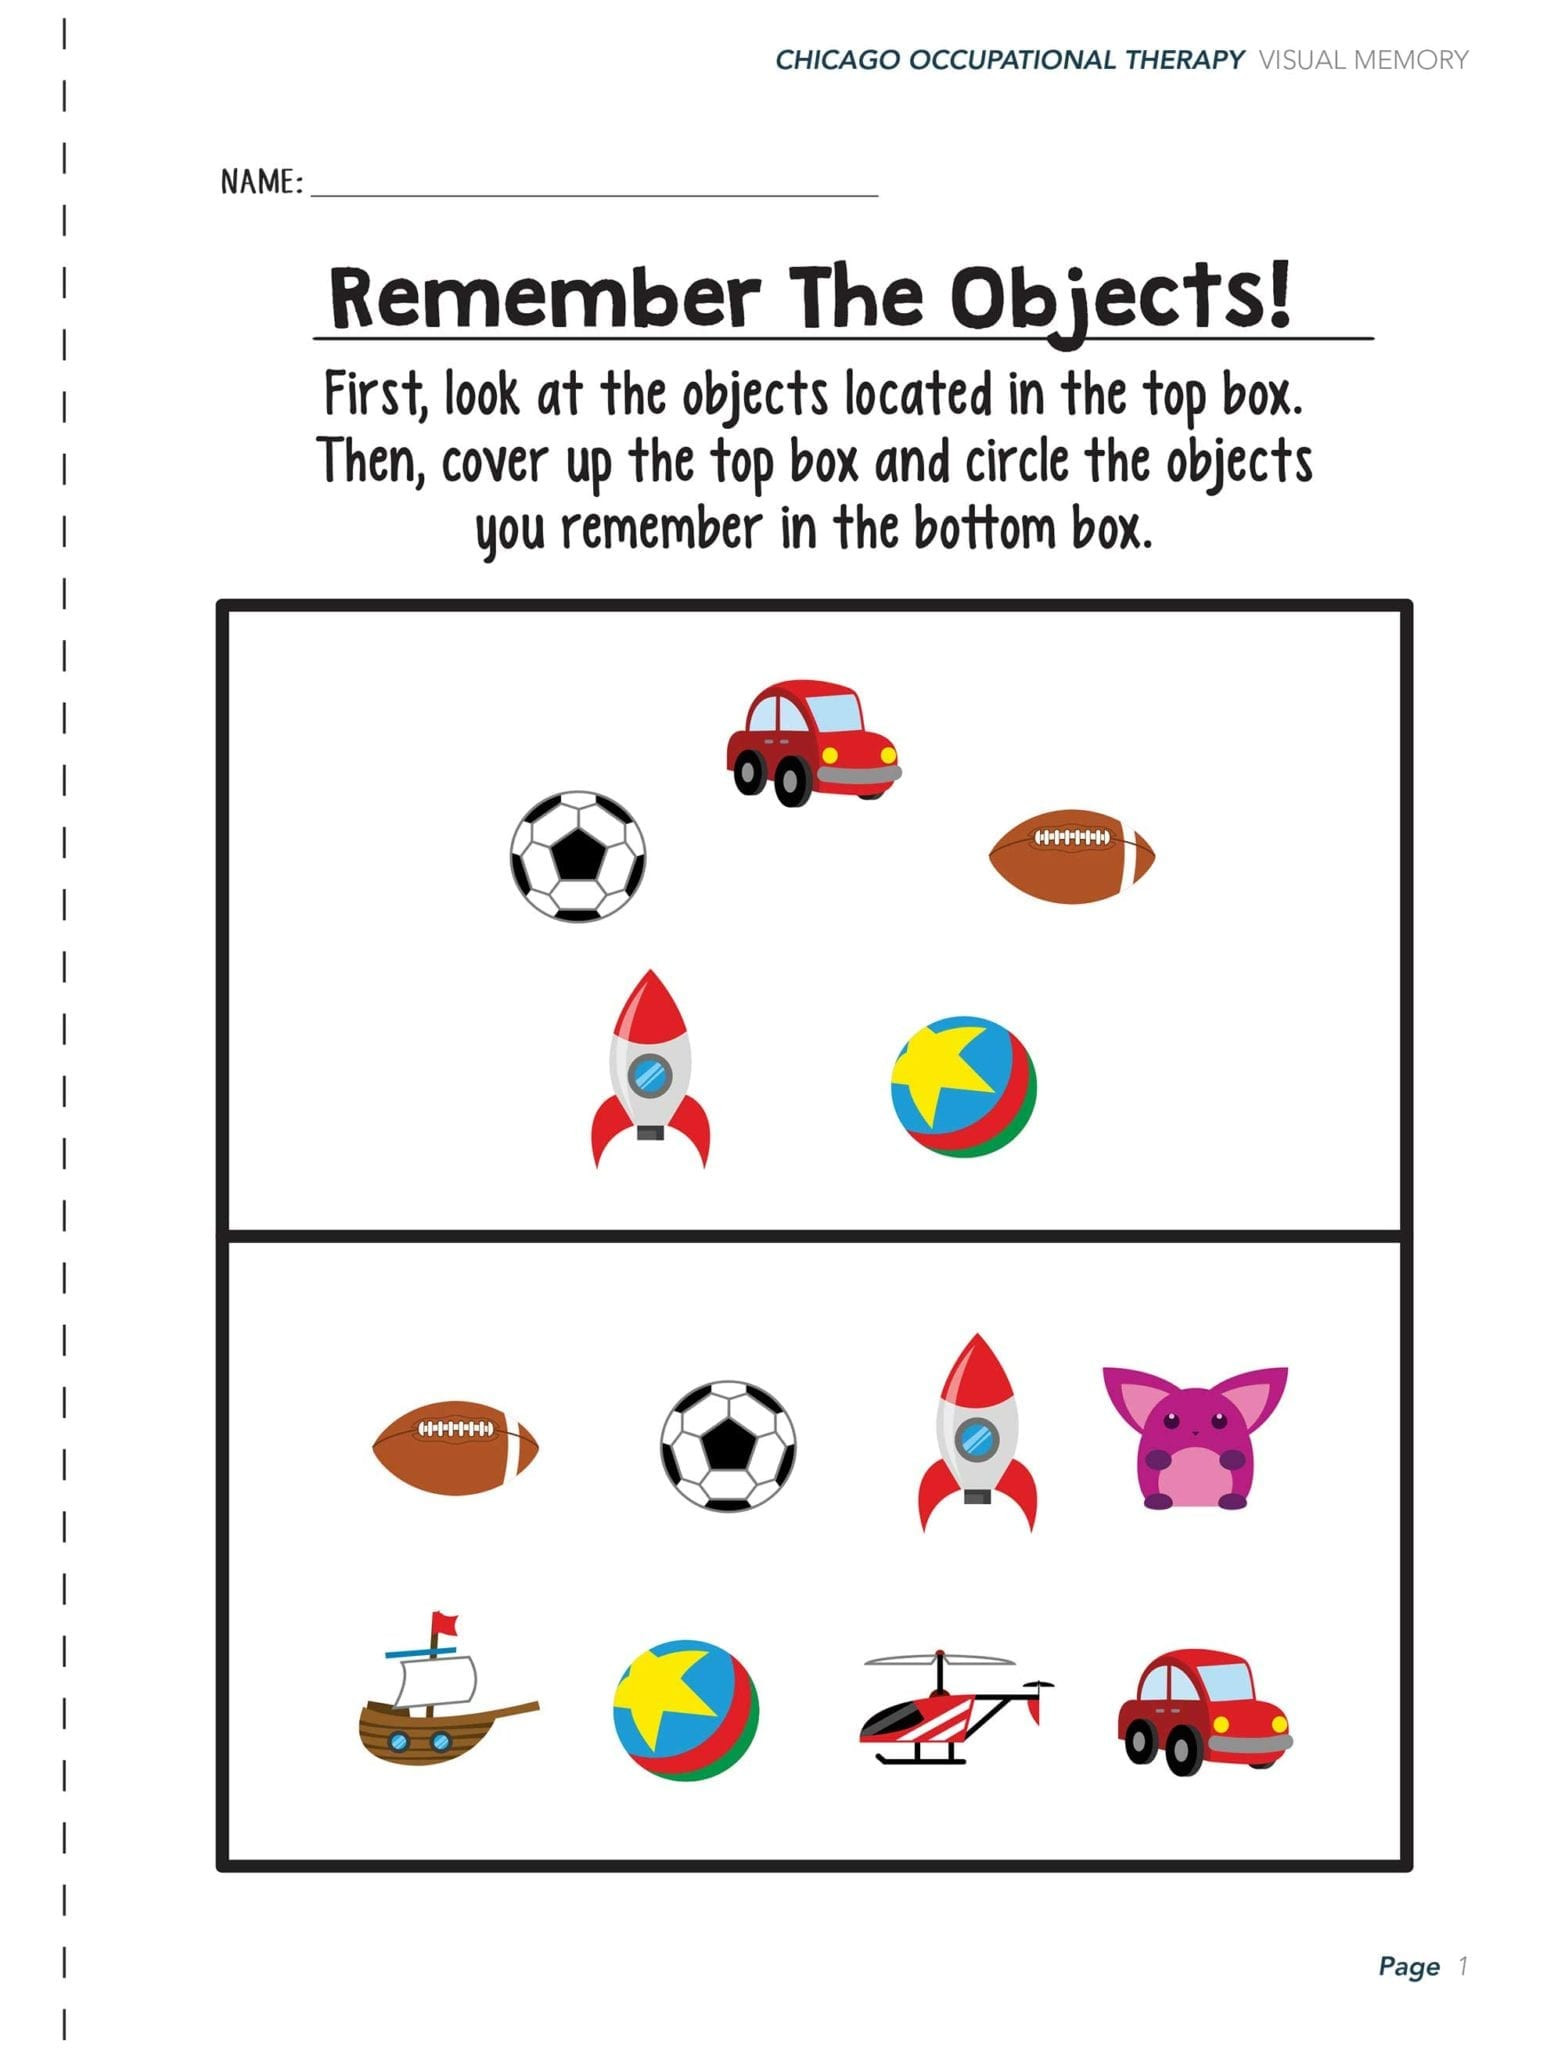 Visual Perceptual Worksheets Free Printables Visual Perceptual Activity Worksheets Chicago Occupational